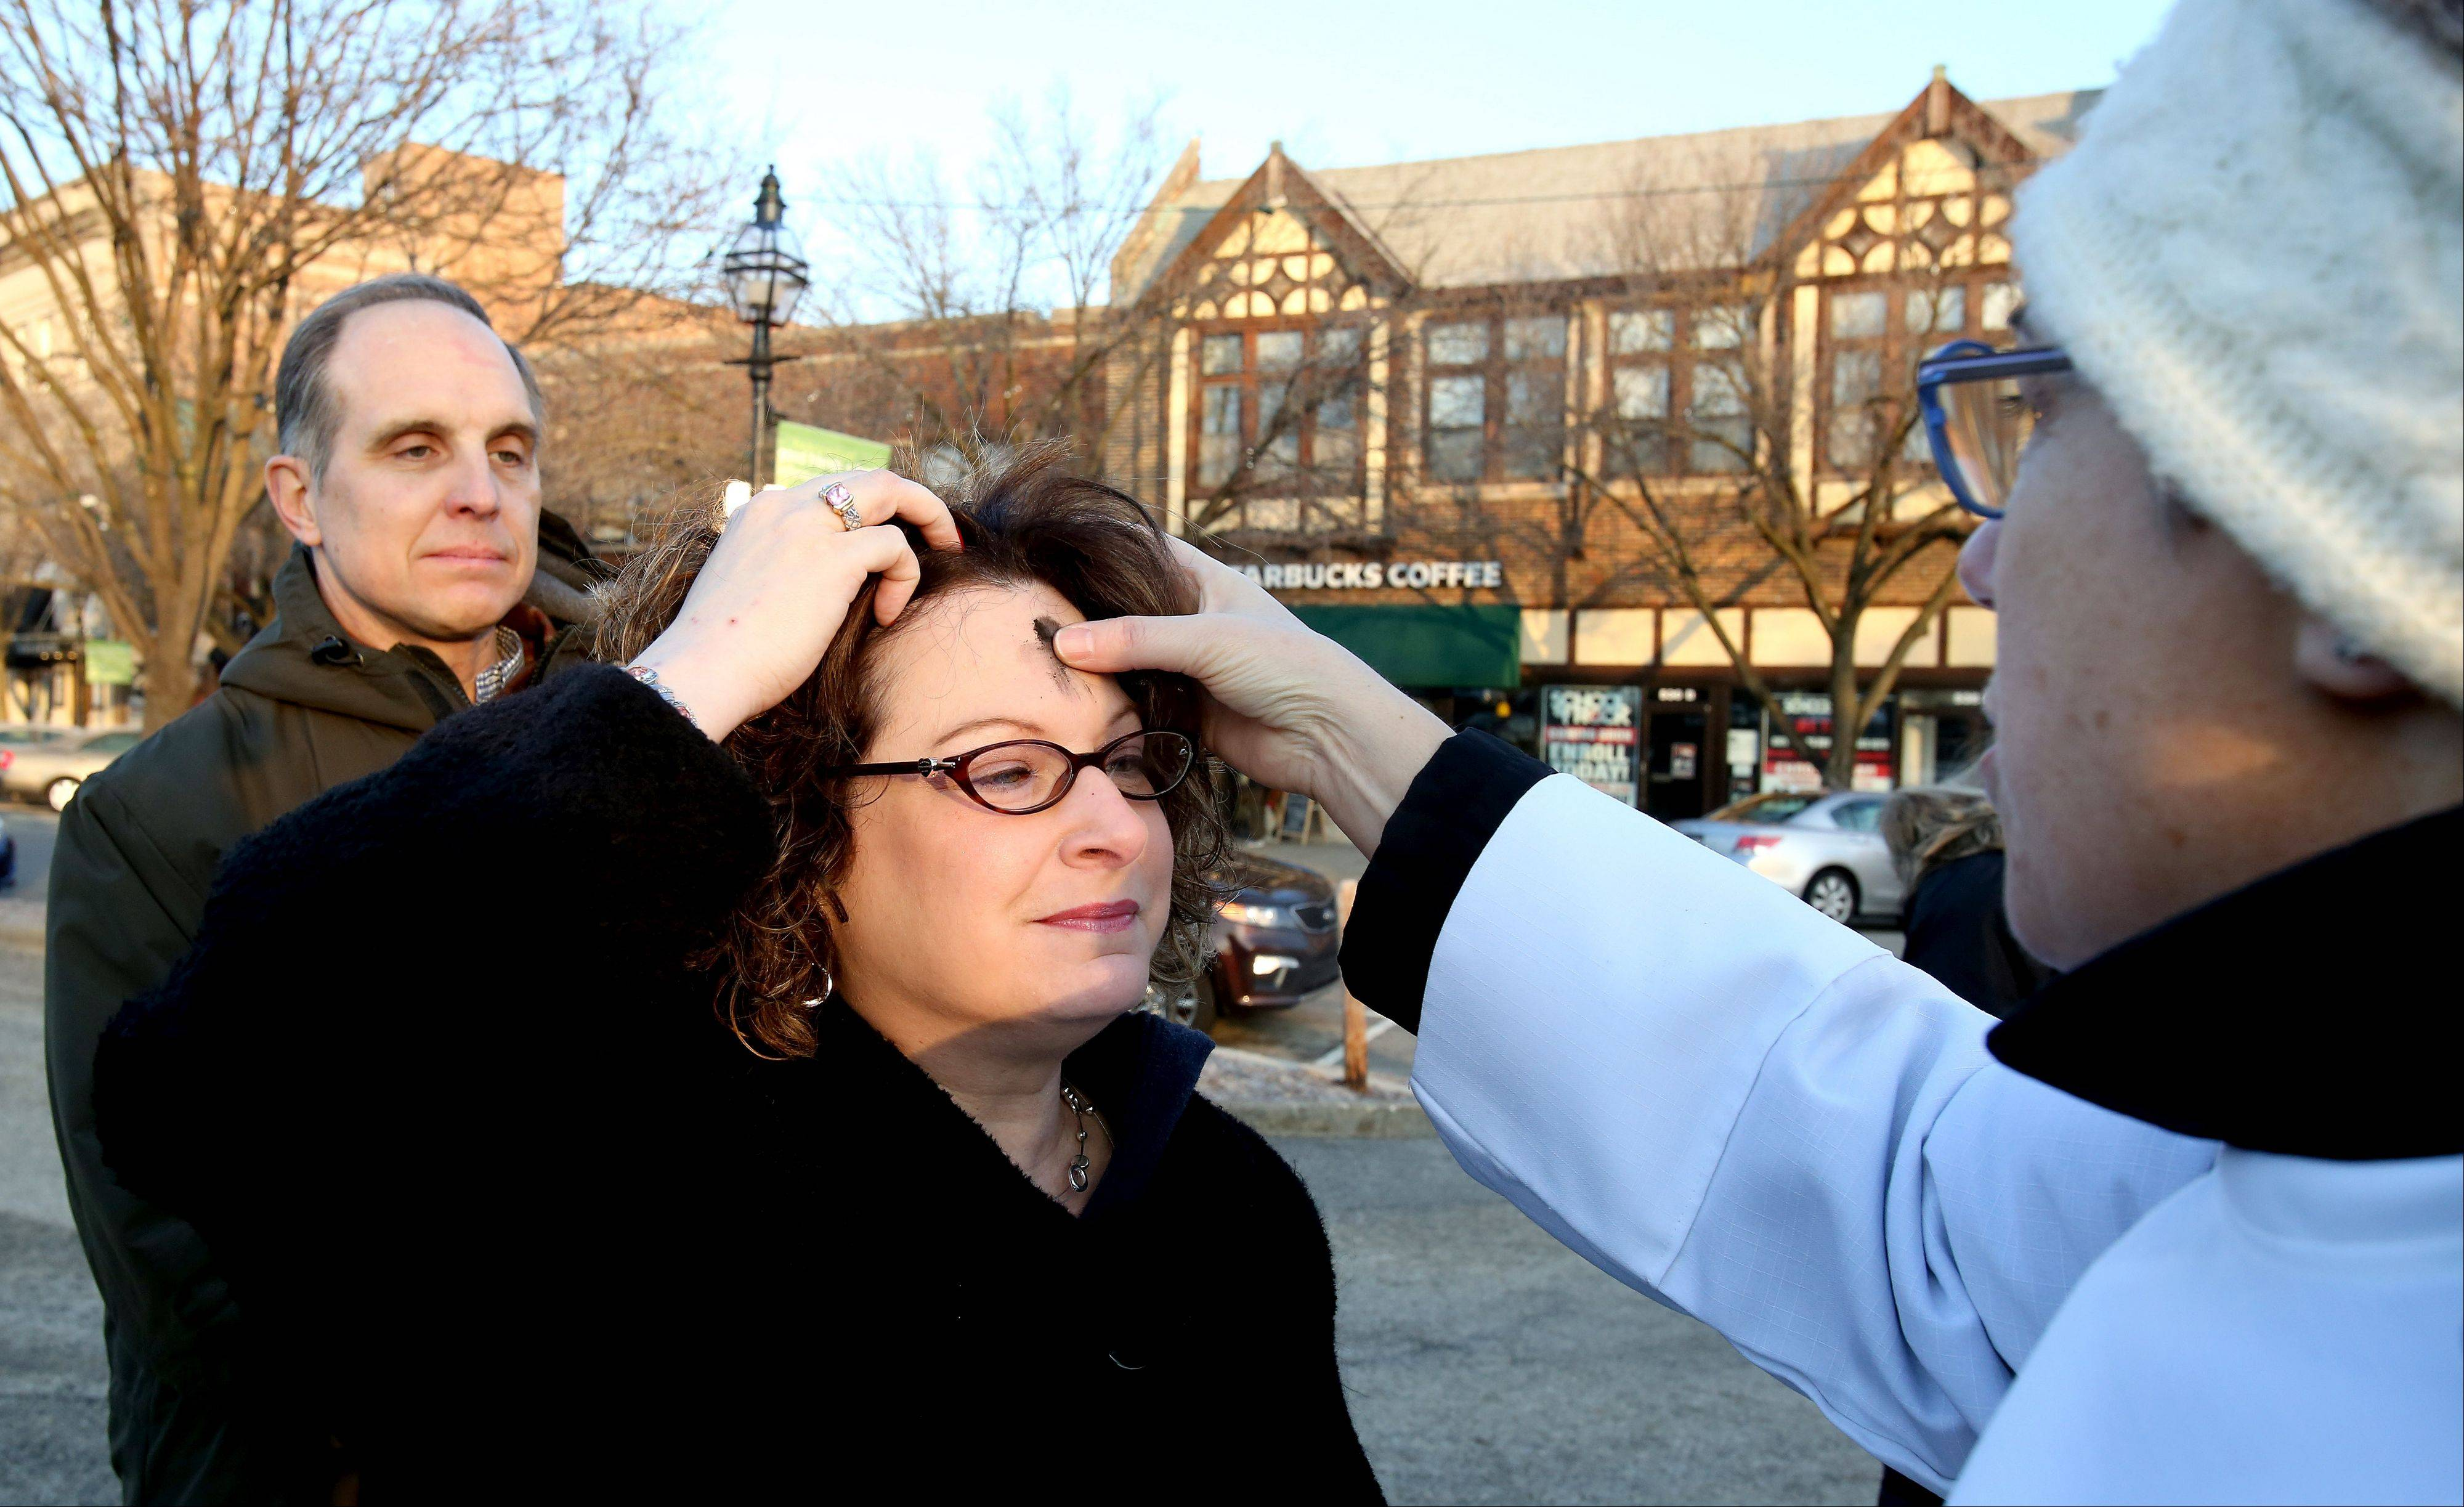 Kristin Progar of Glen Ellyn receives ashes from Charisse Jensen, a seminary intern with Faith Evangelical Lutheran Church, during Ashes to Go at the Glen Ellyn train station on Wednesday. Michael Progar, left, awaits his turn.